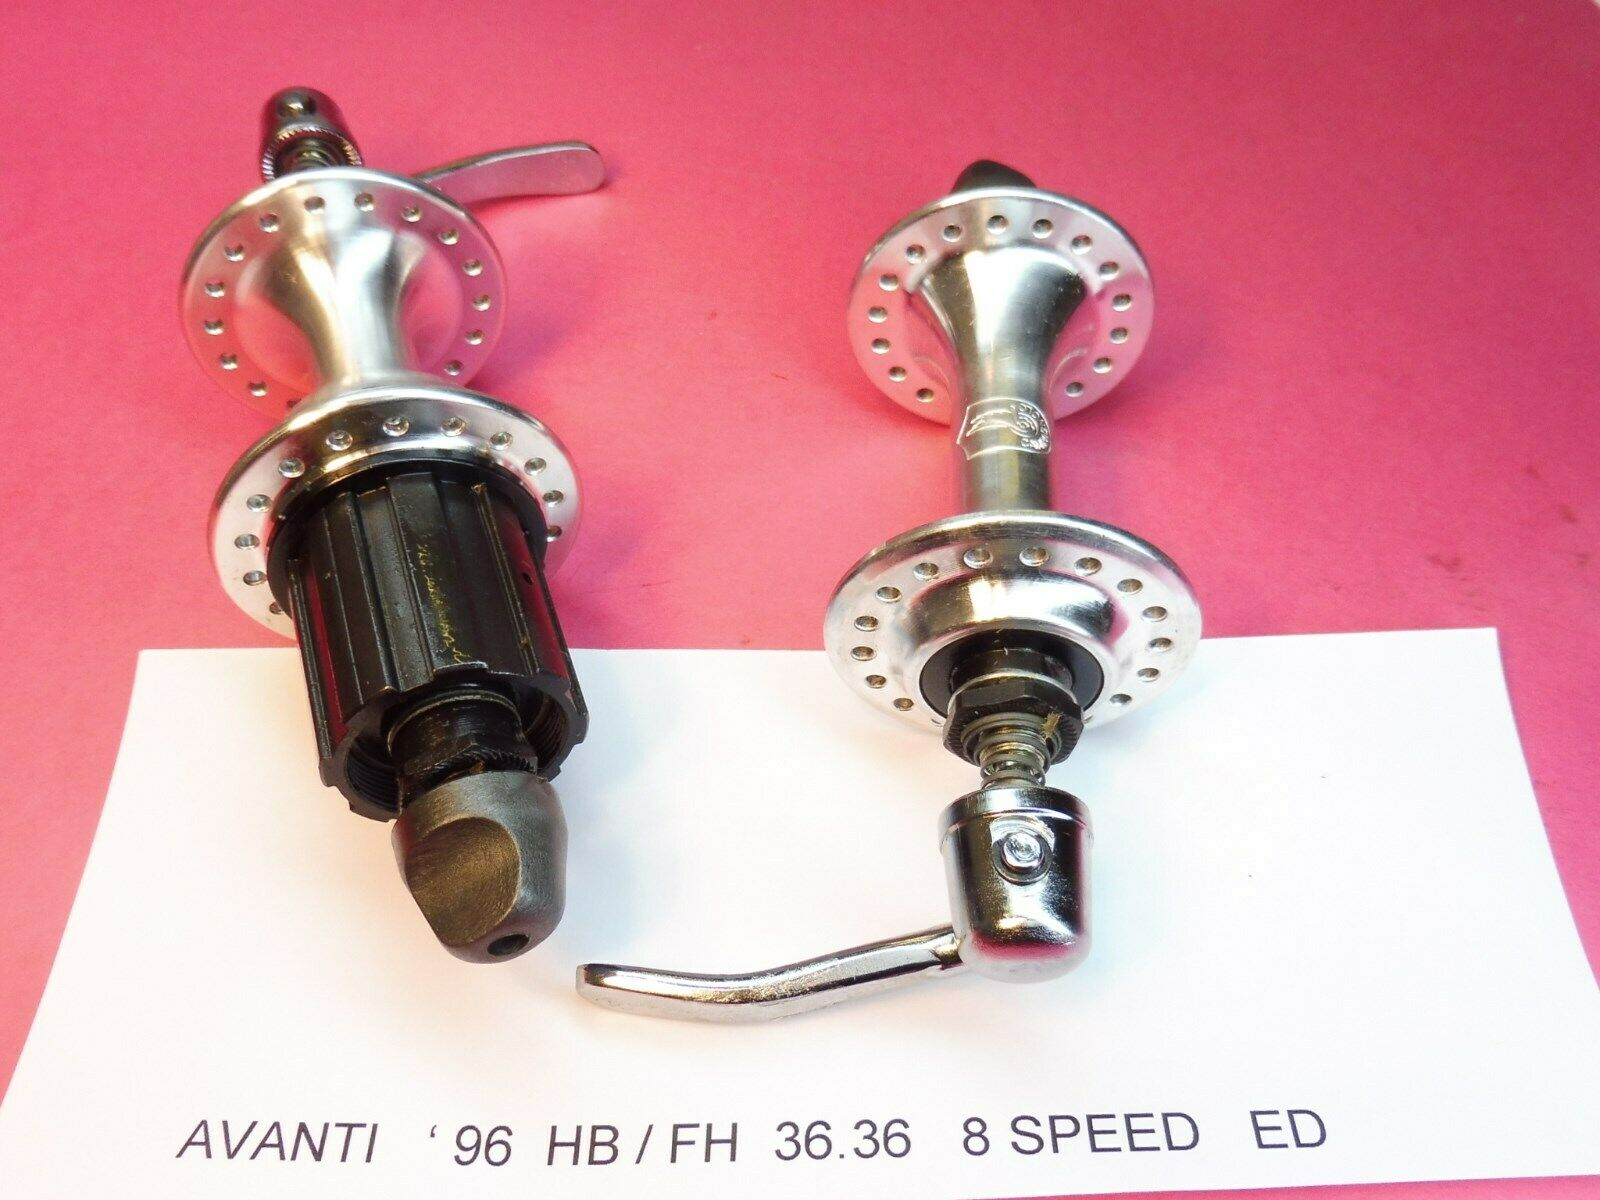 Campagnolo avanti Freehubset 36.36 - 8 8 8 Velocità Nos 380528